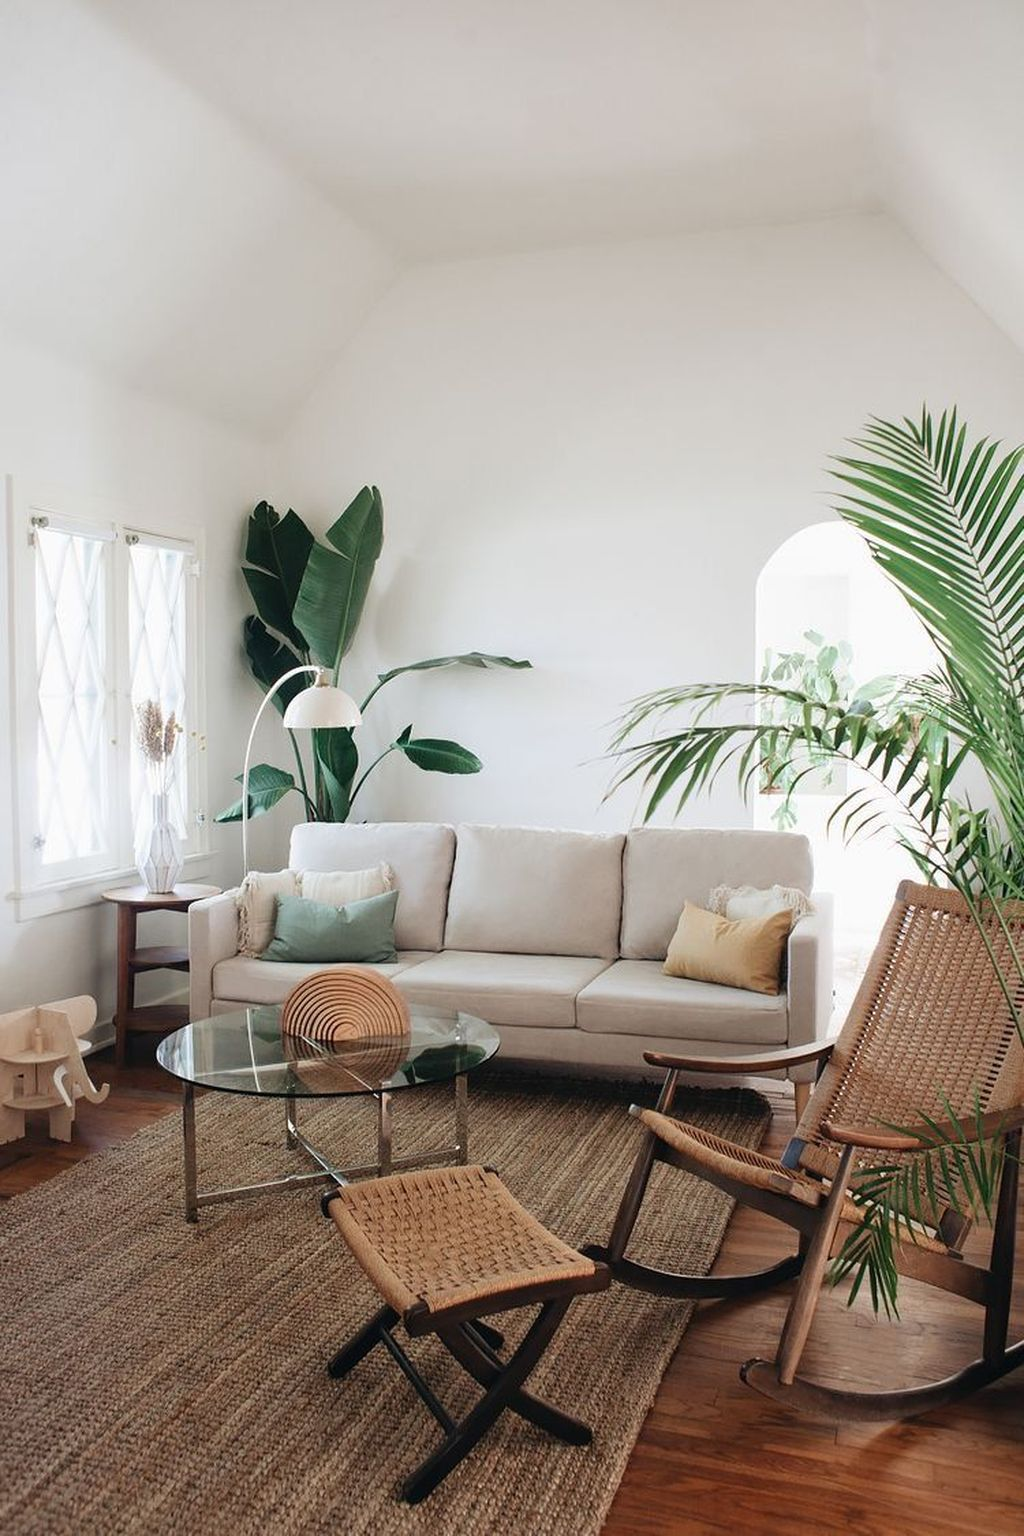 45 Simple Living Room Decorating Ideas On A Budget 2019 Small Apartment Living Room Elegant Living Room Living